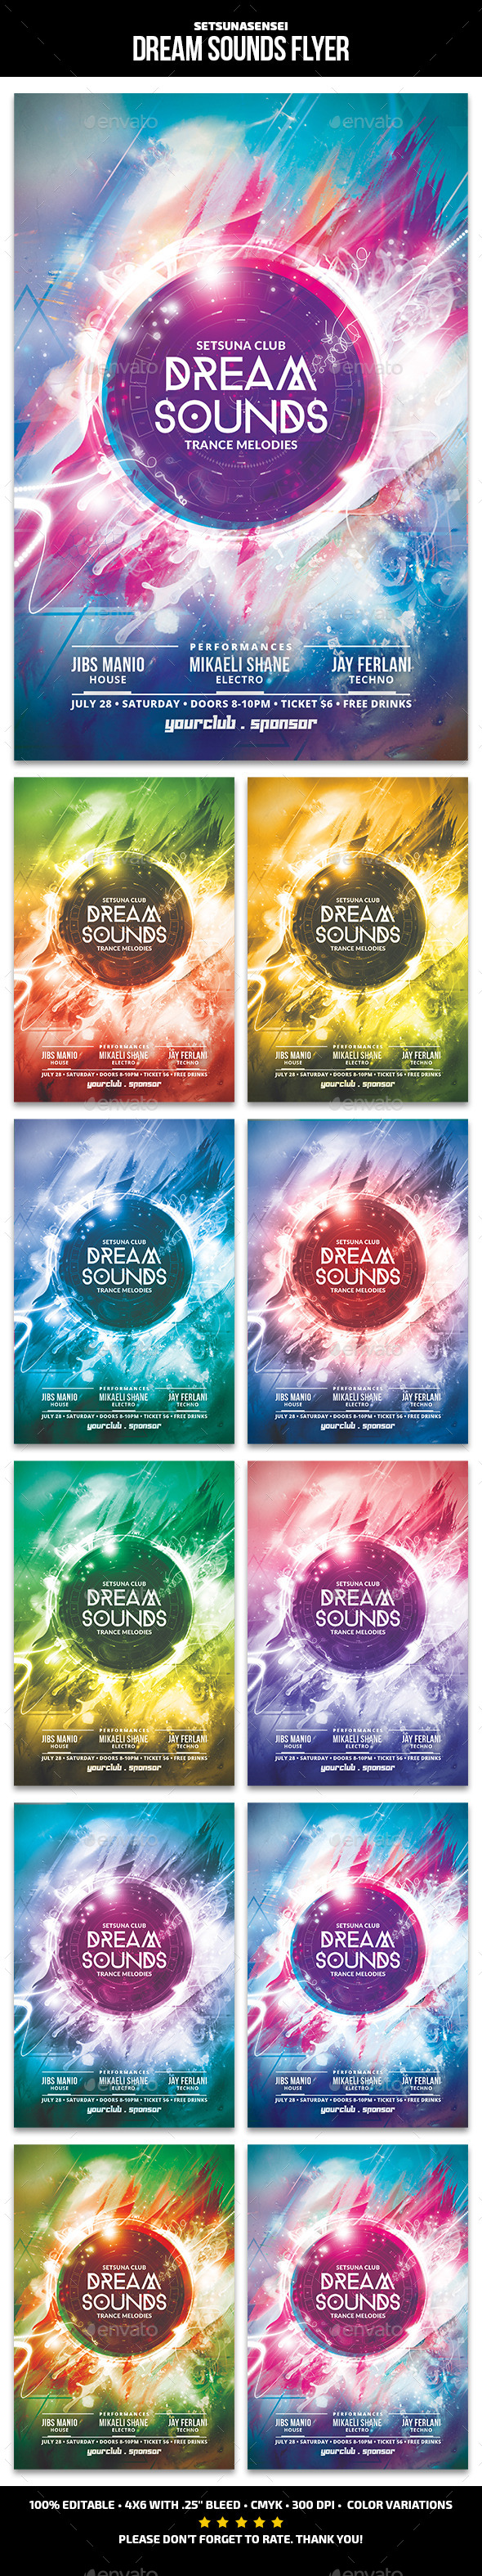 Dream Sounds Flyer - Clubs & Parties Events